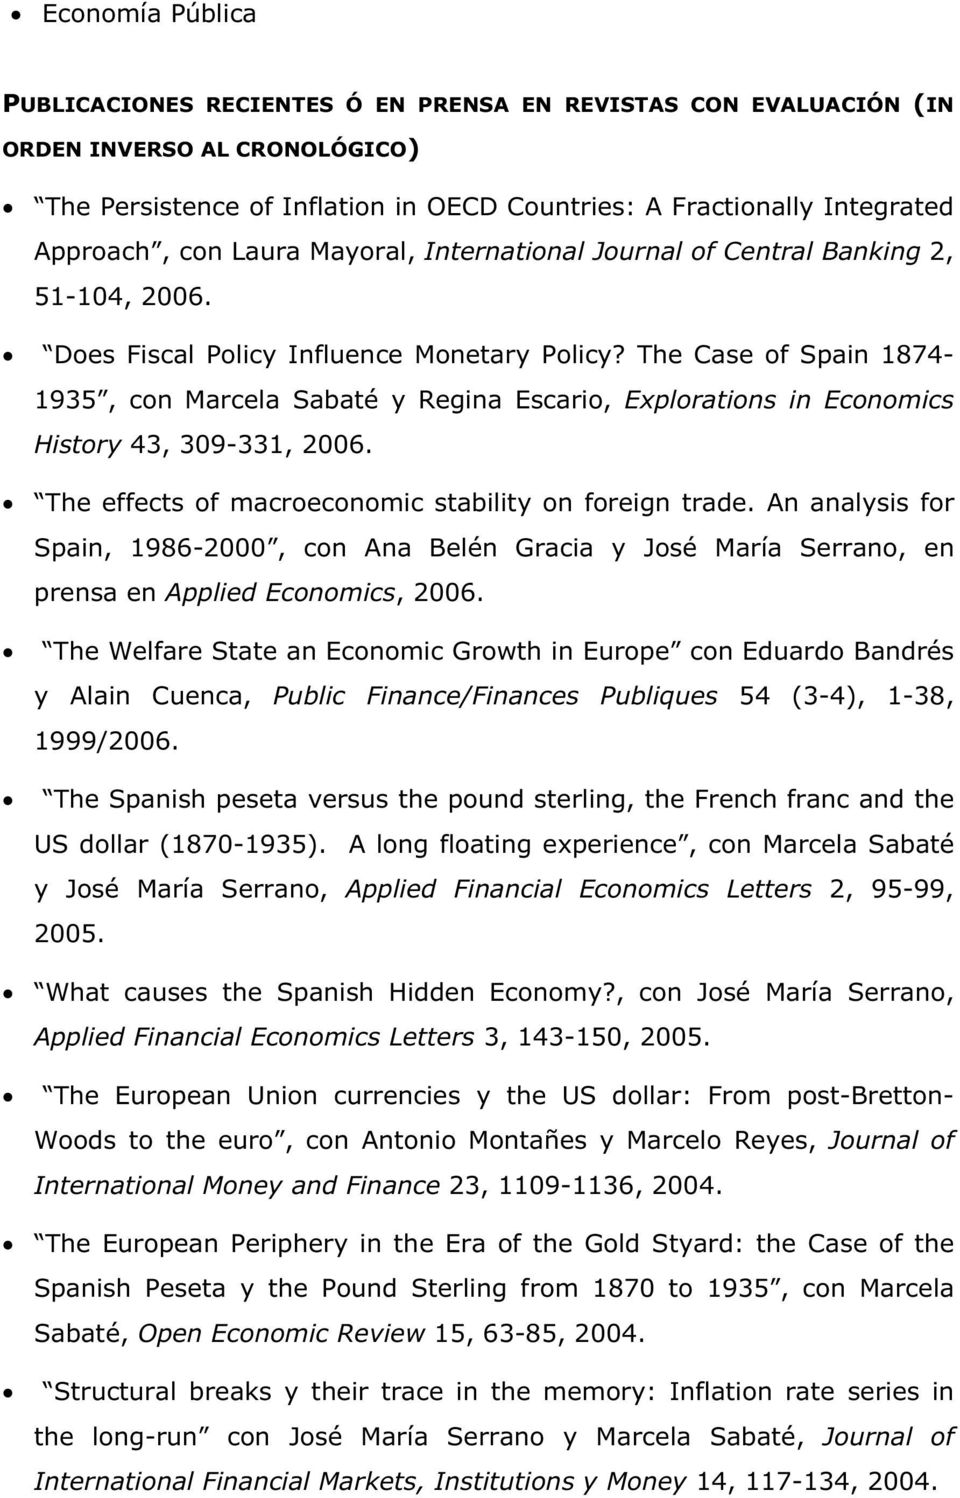 The Case of Spain 1874-1935, con Marcela Sabaté y Regina Escario, Explorations in Economics History 43, 309-331, 2006. The effects of macroeconomic stability on foreign trade.